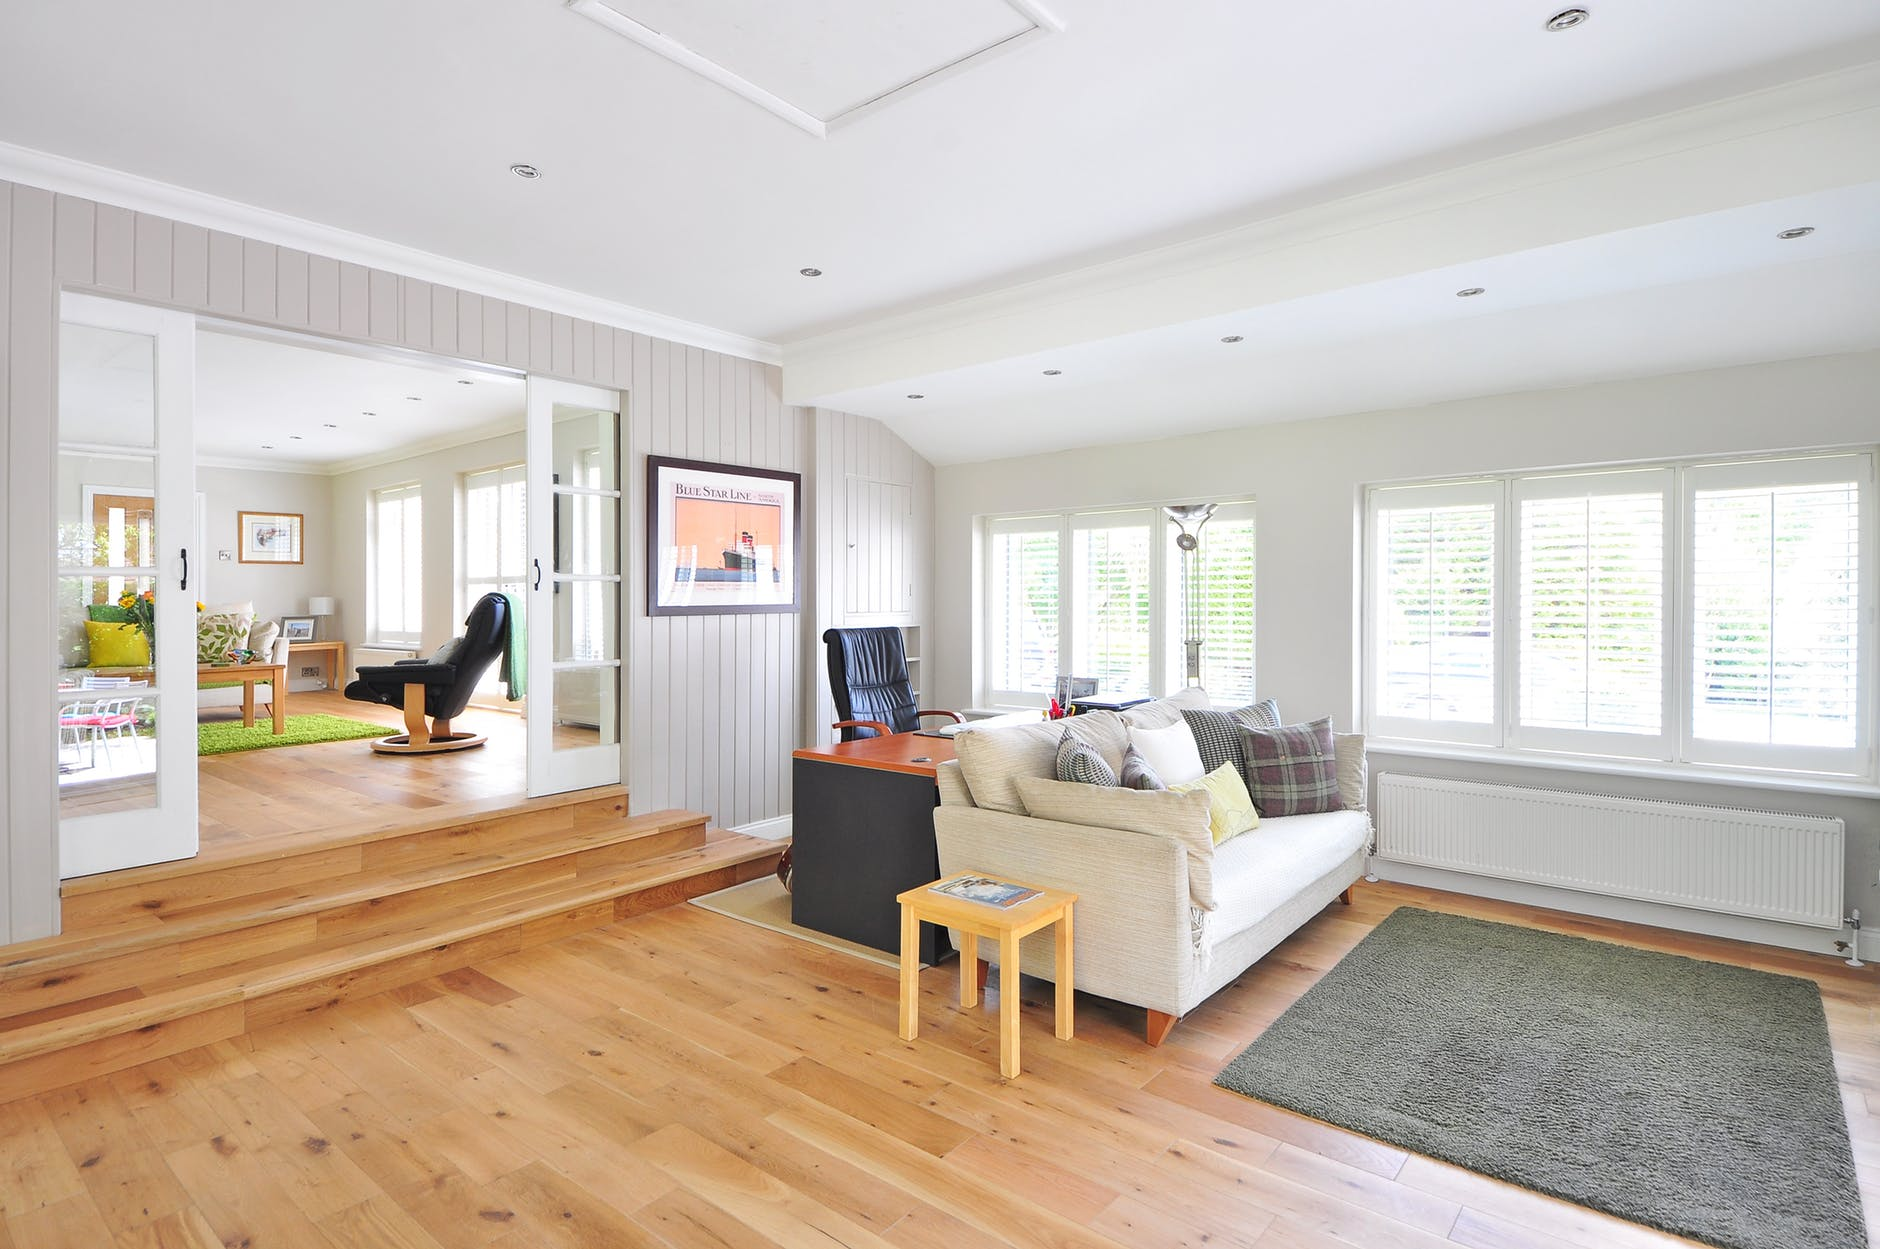 Changes To Make To Your Home In 2020